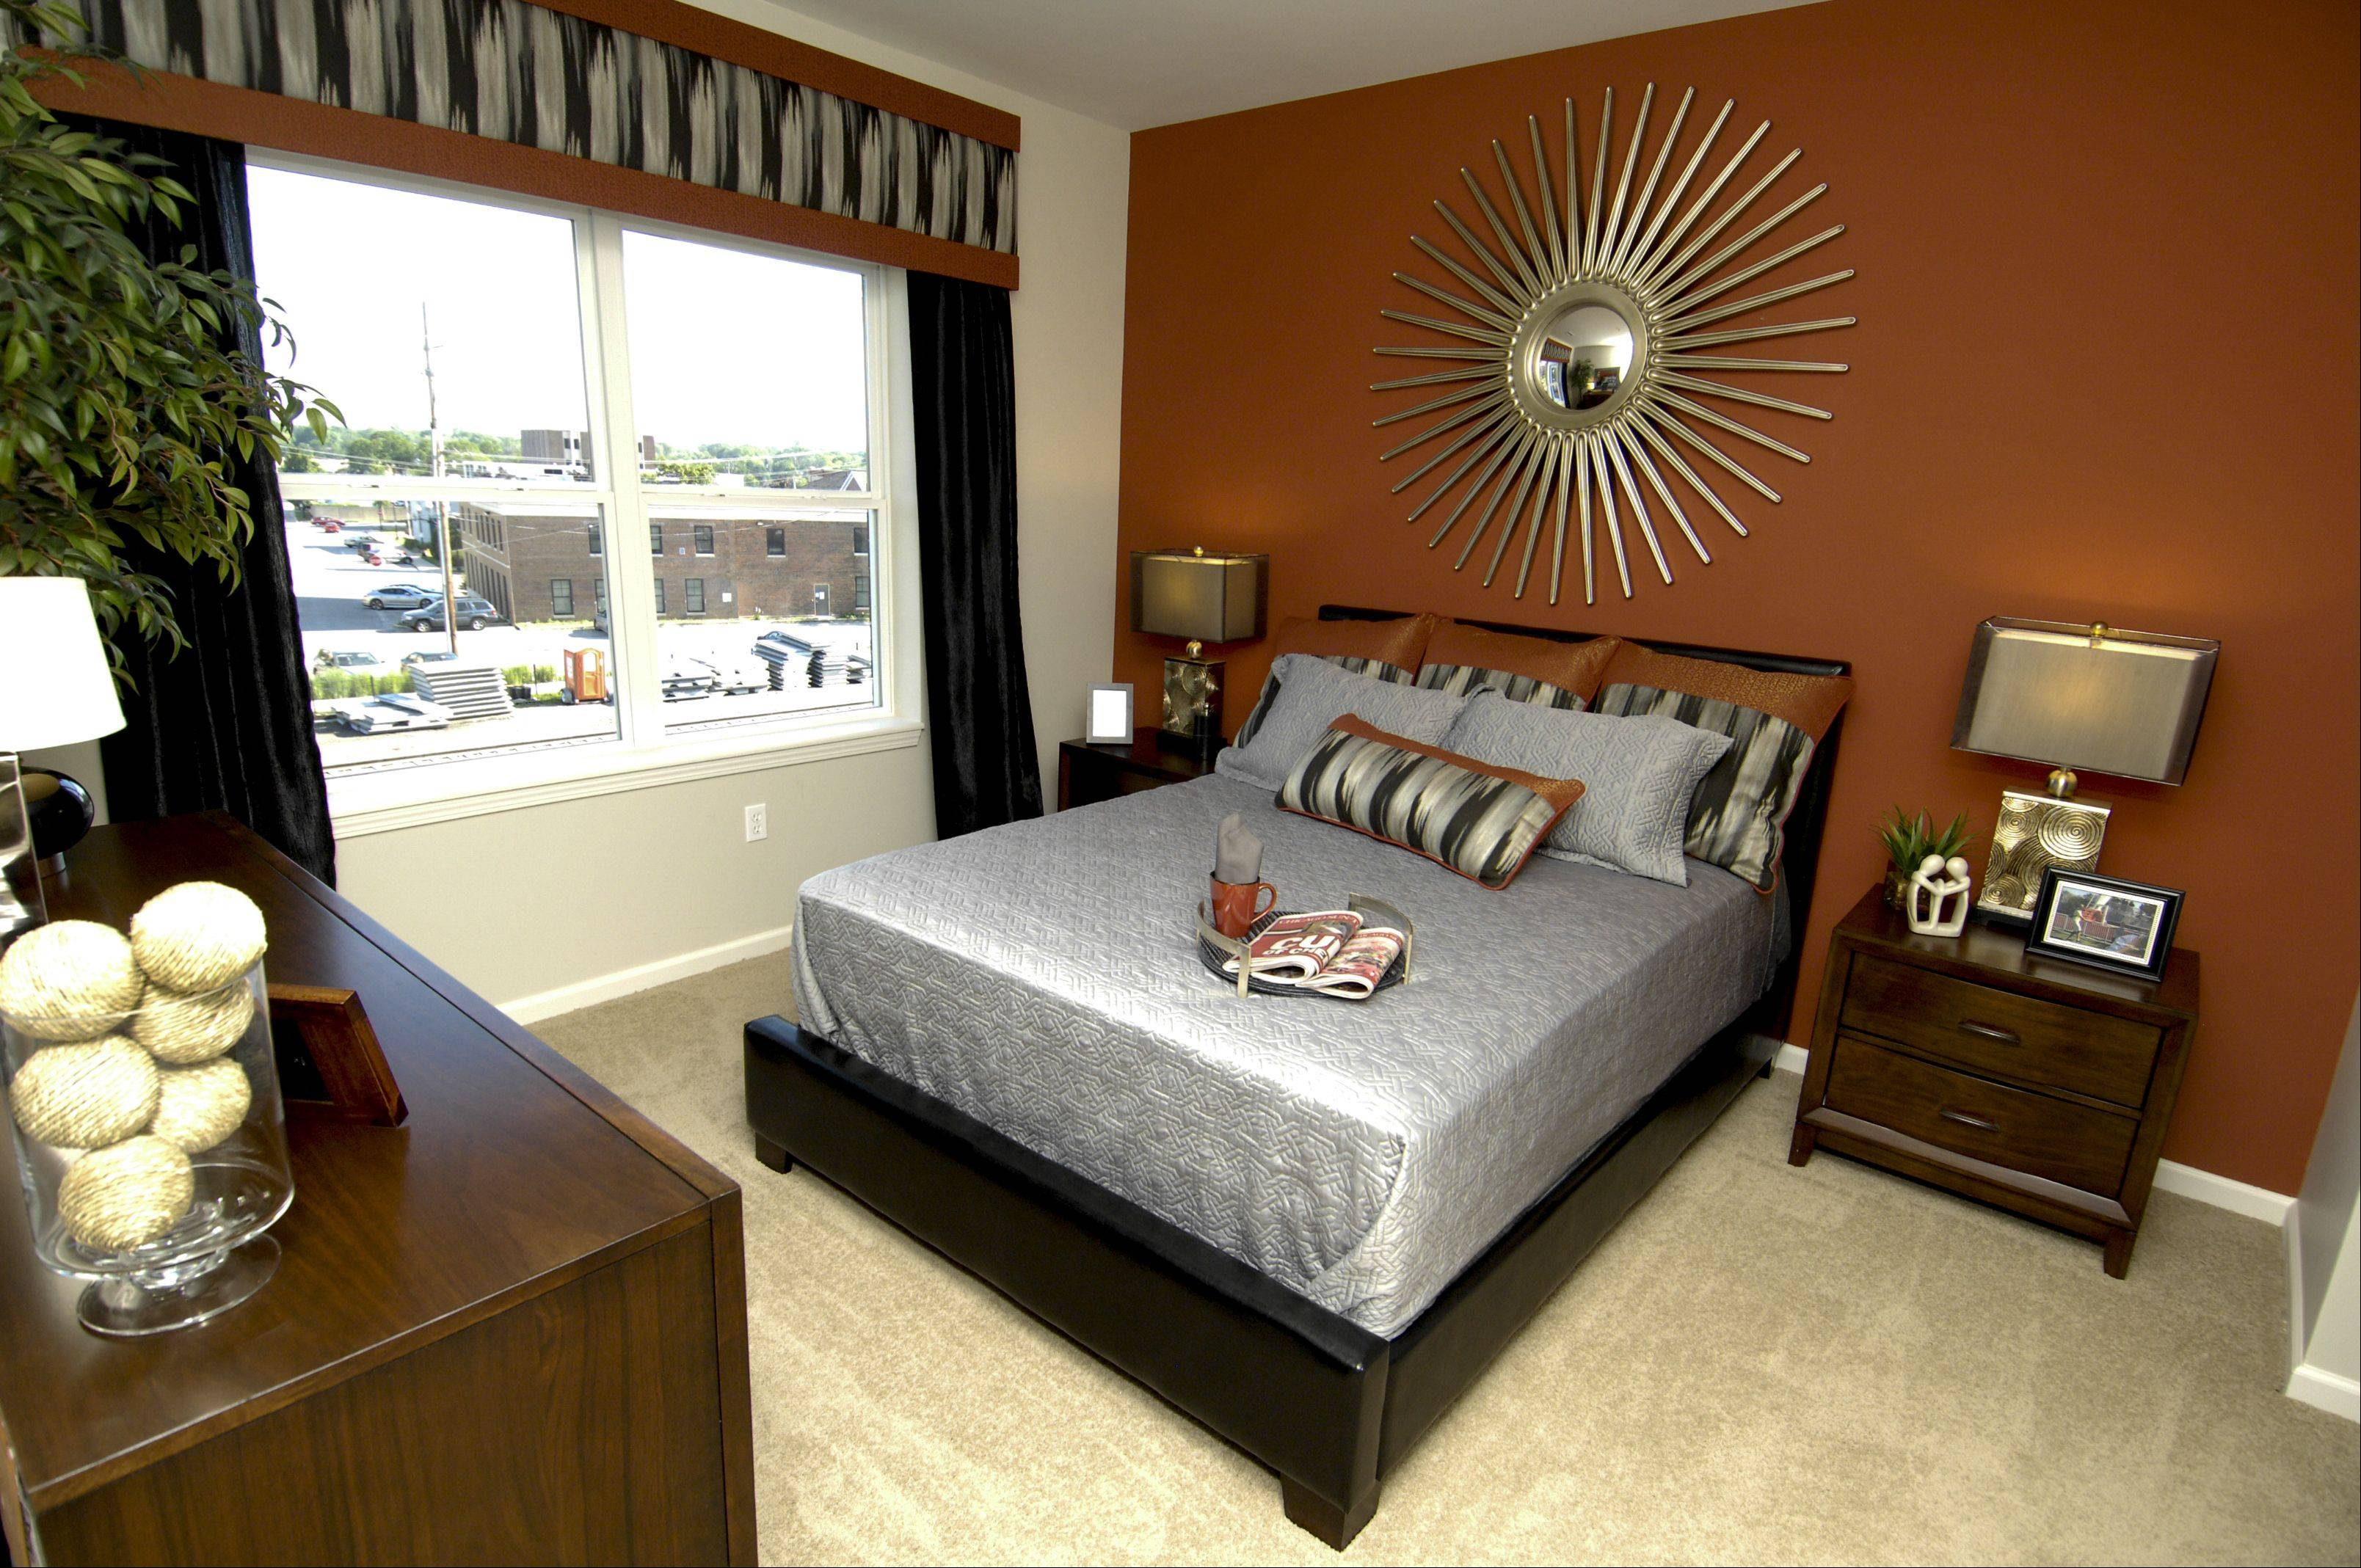 A bedroom in one of the model apartments at Wheaton 121 during a preview of its nearly completed high-end apartment building, Thursday.